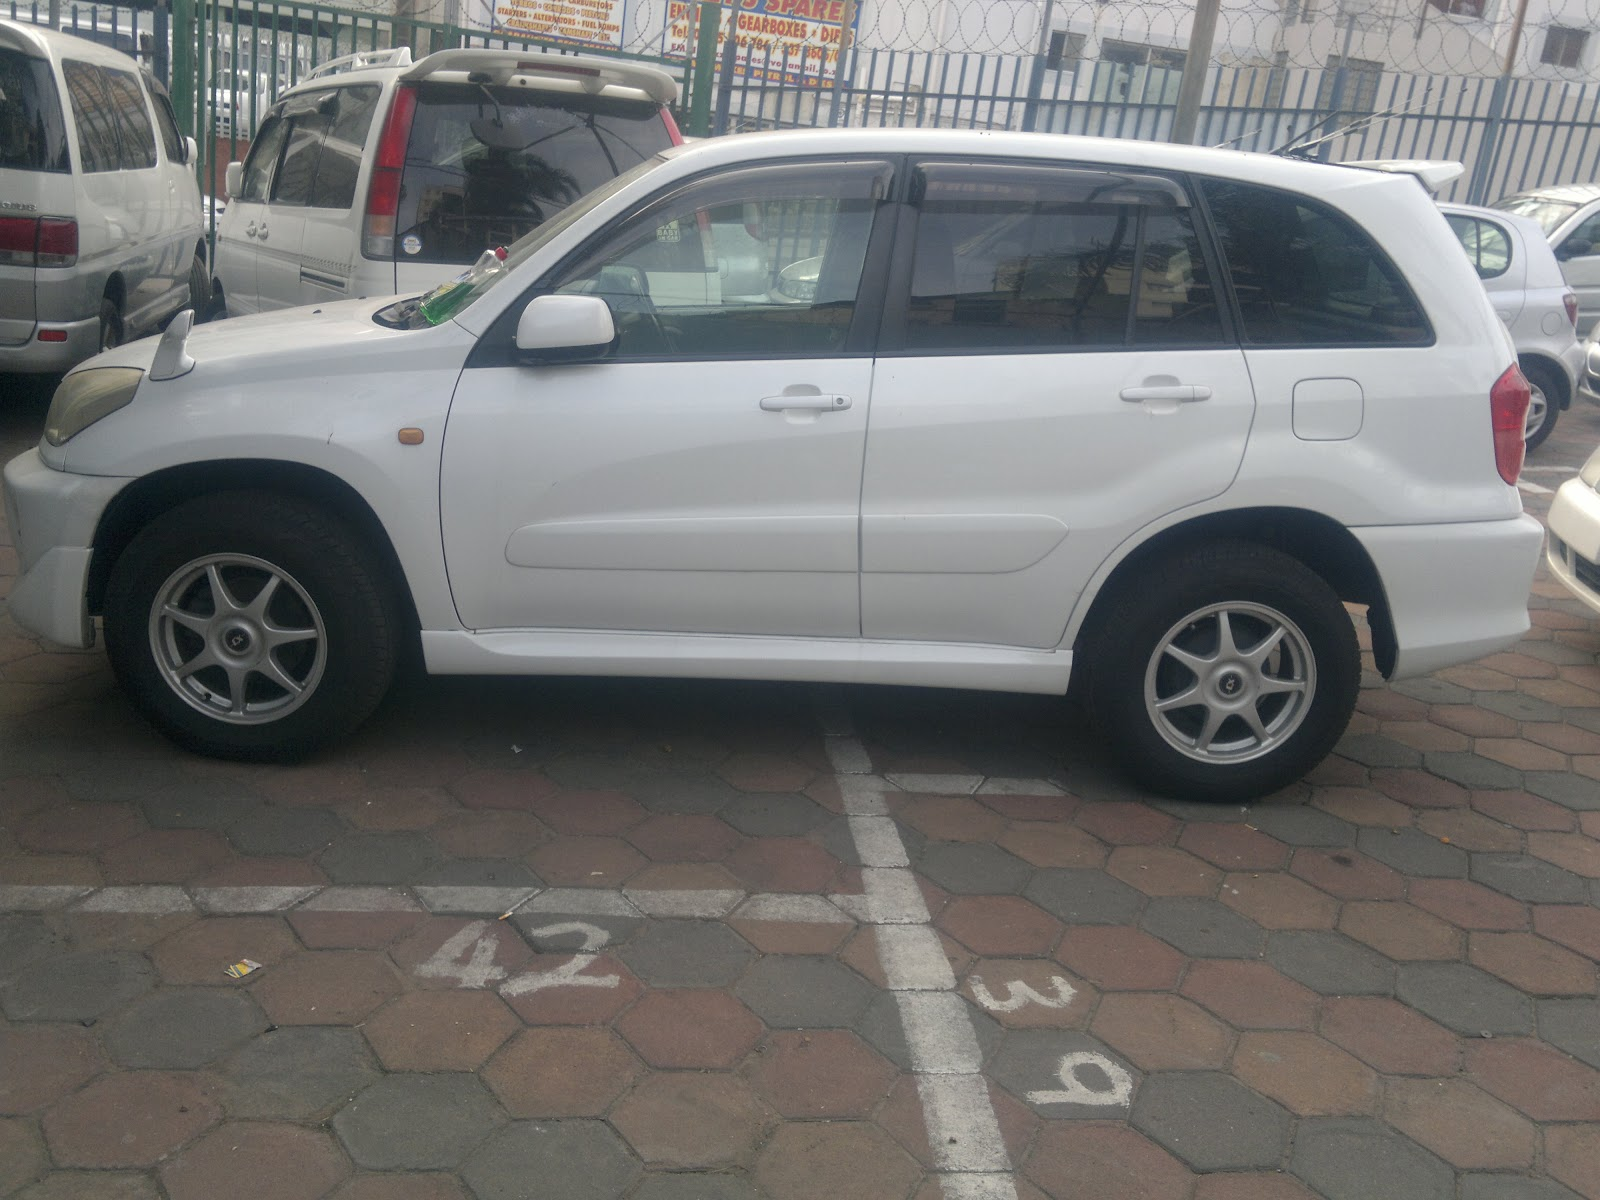 Affordable used japanese cars trucks and mini buses in durban south